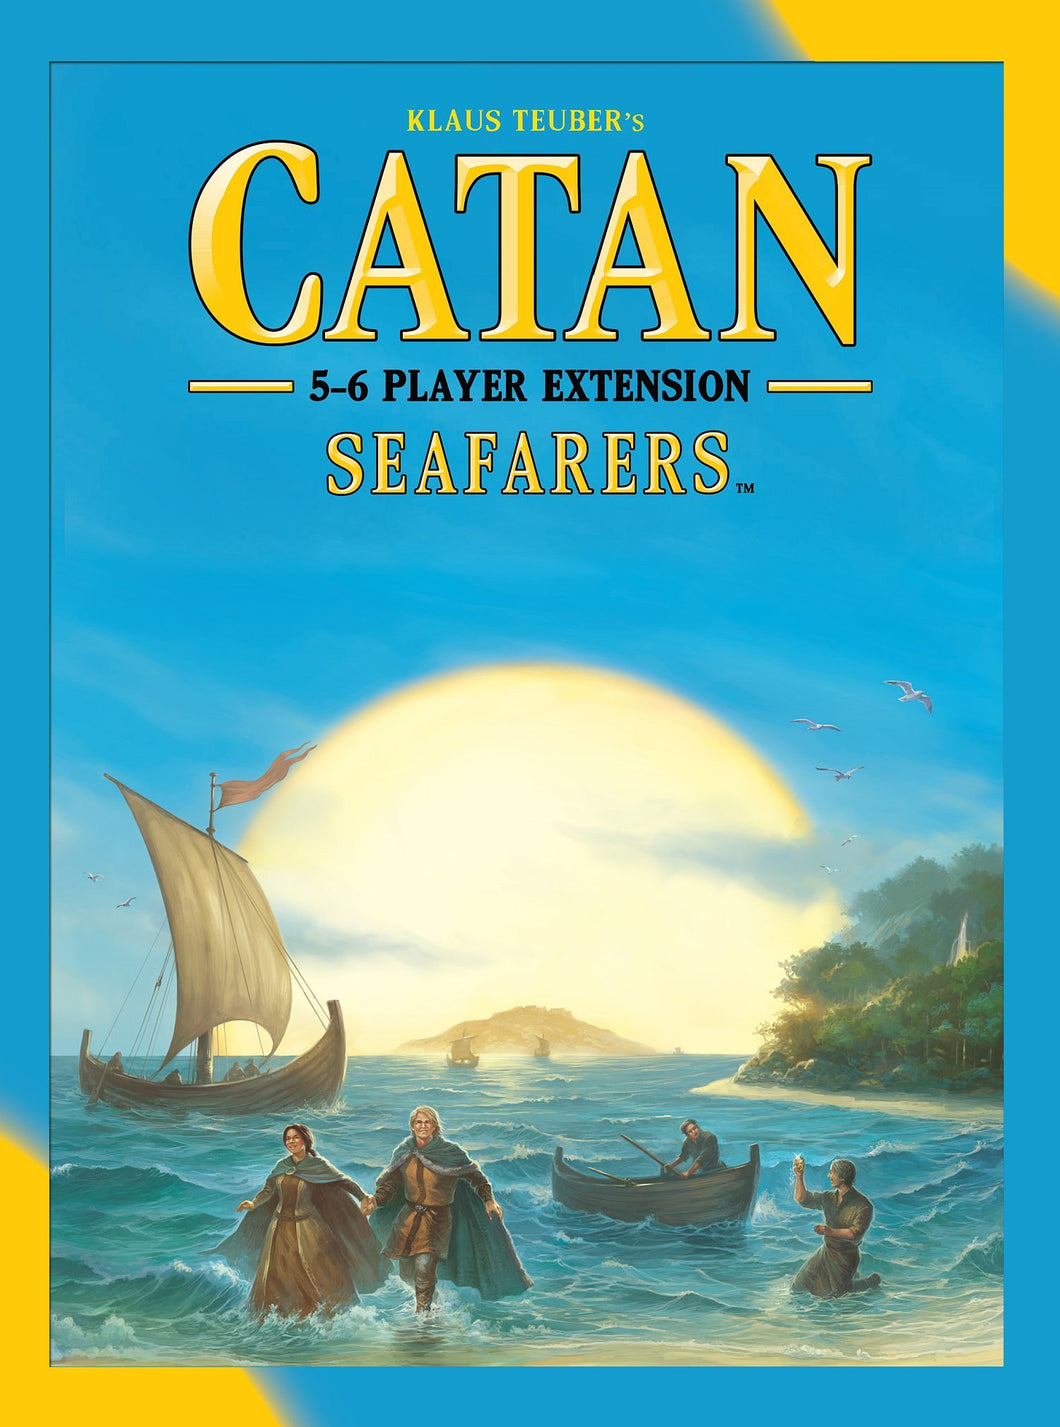 Catan Seafarers 5&6 Player Extension